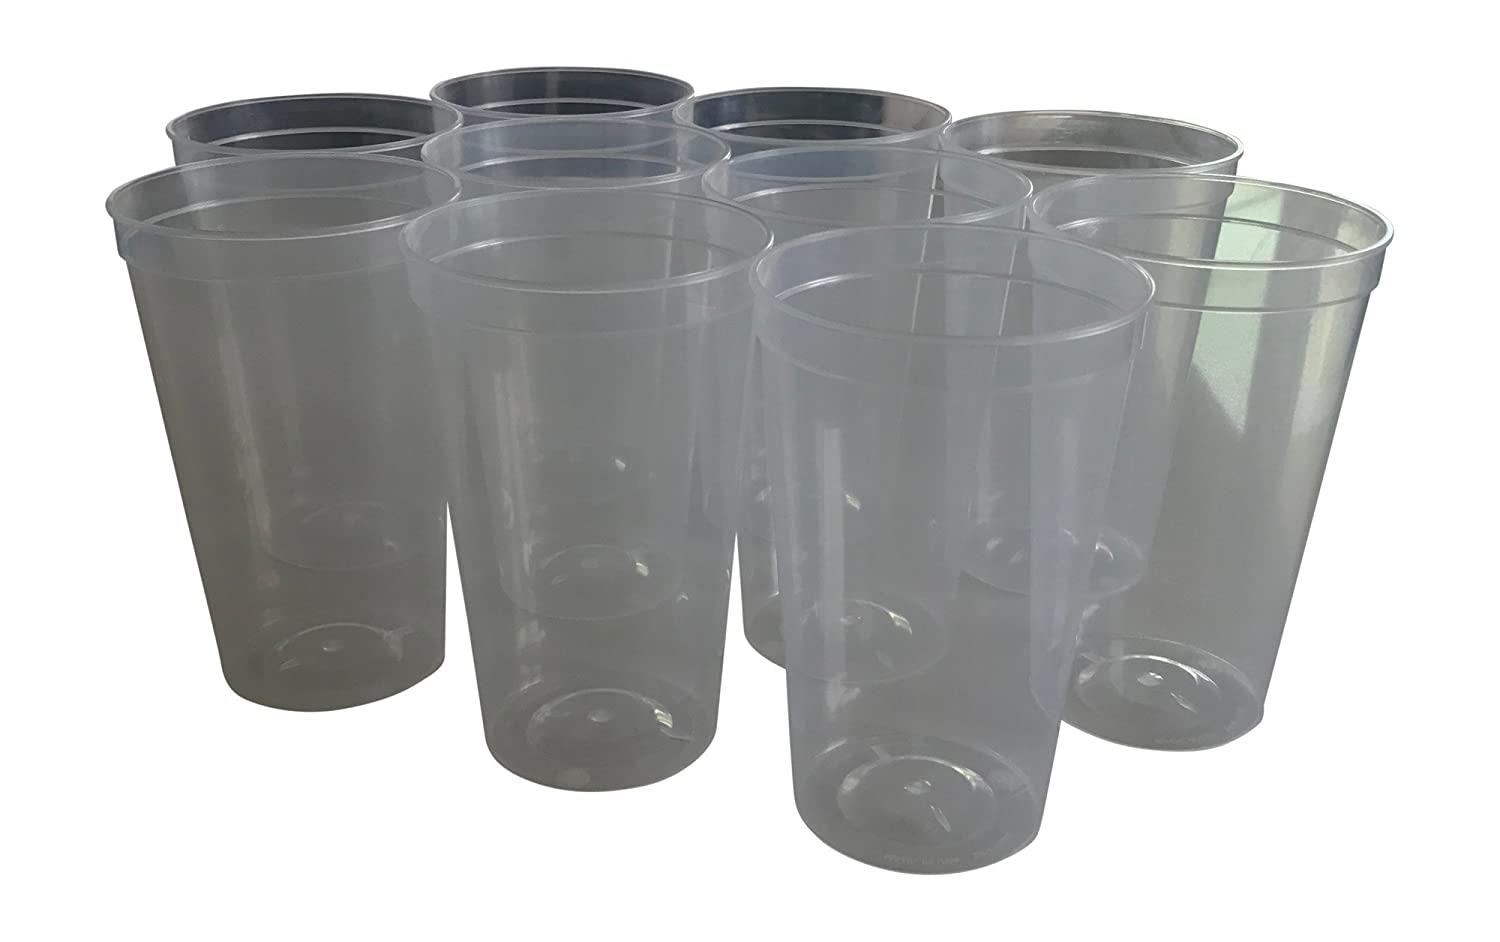 d9bc3efb20b CSBD 10 Pack Blank 22 oz Plastic Stadium Cups Bulk - Made In USA, Reusable  or Disposable, Great For Customization, Monograms, Marketing, DIY Projects,  ...